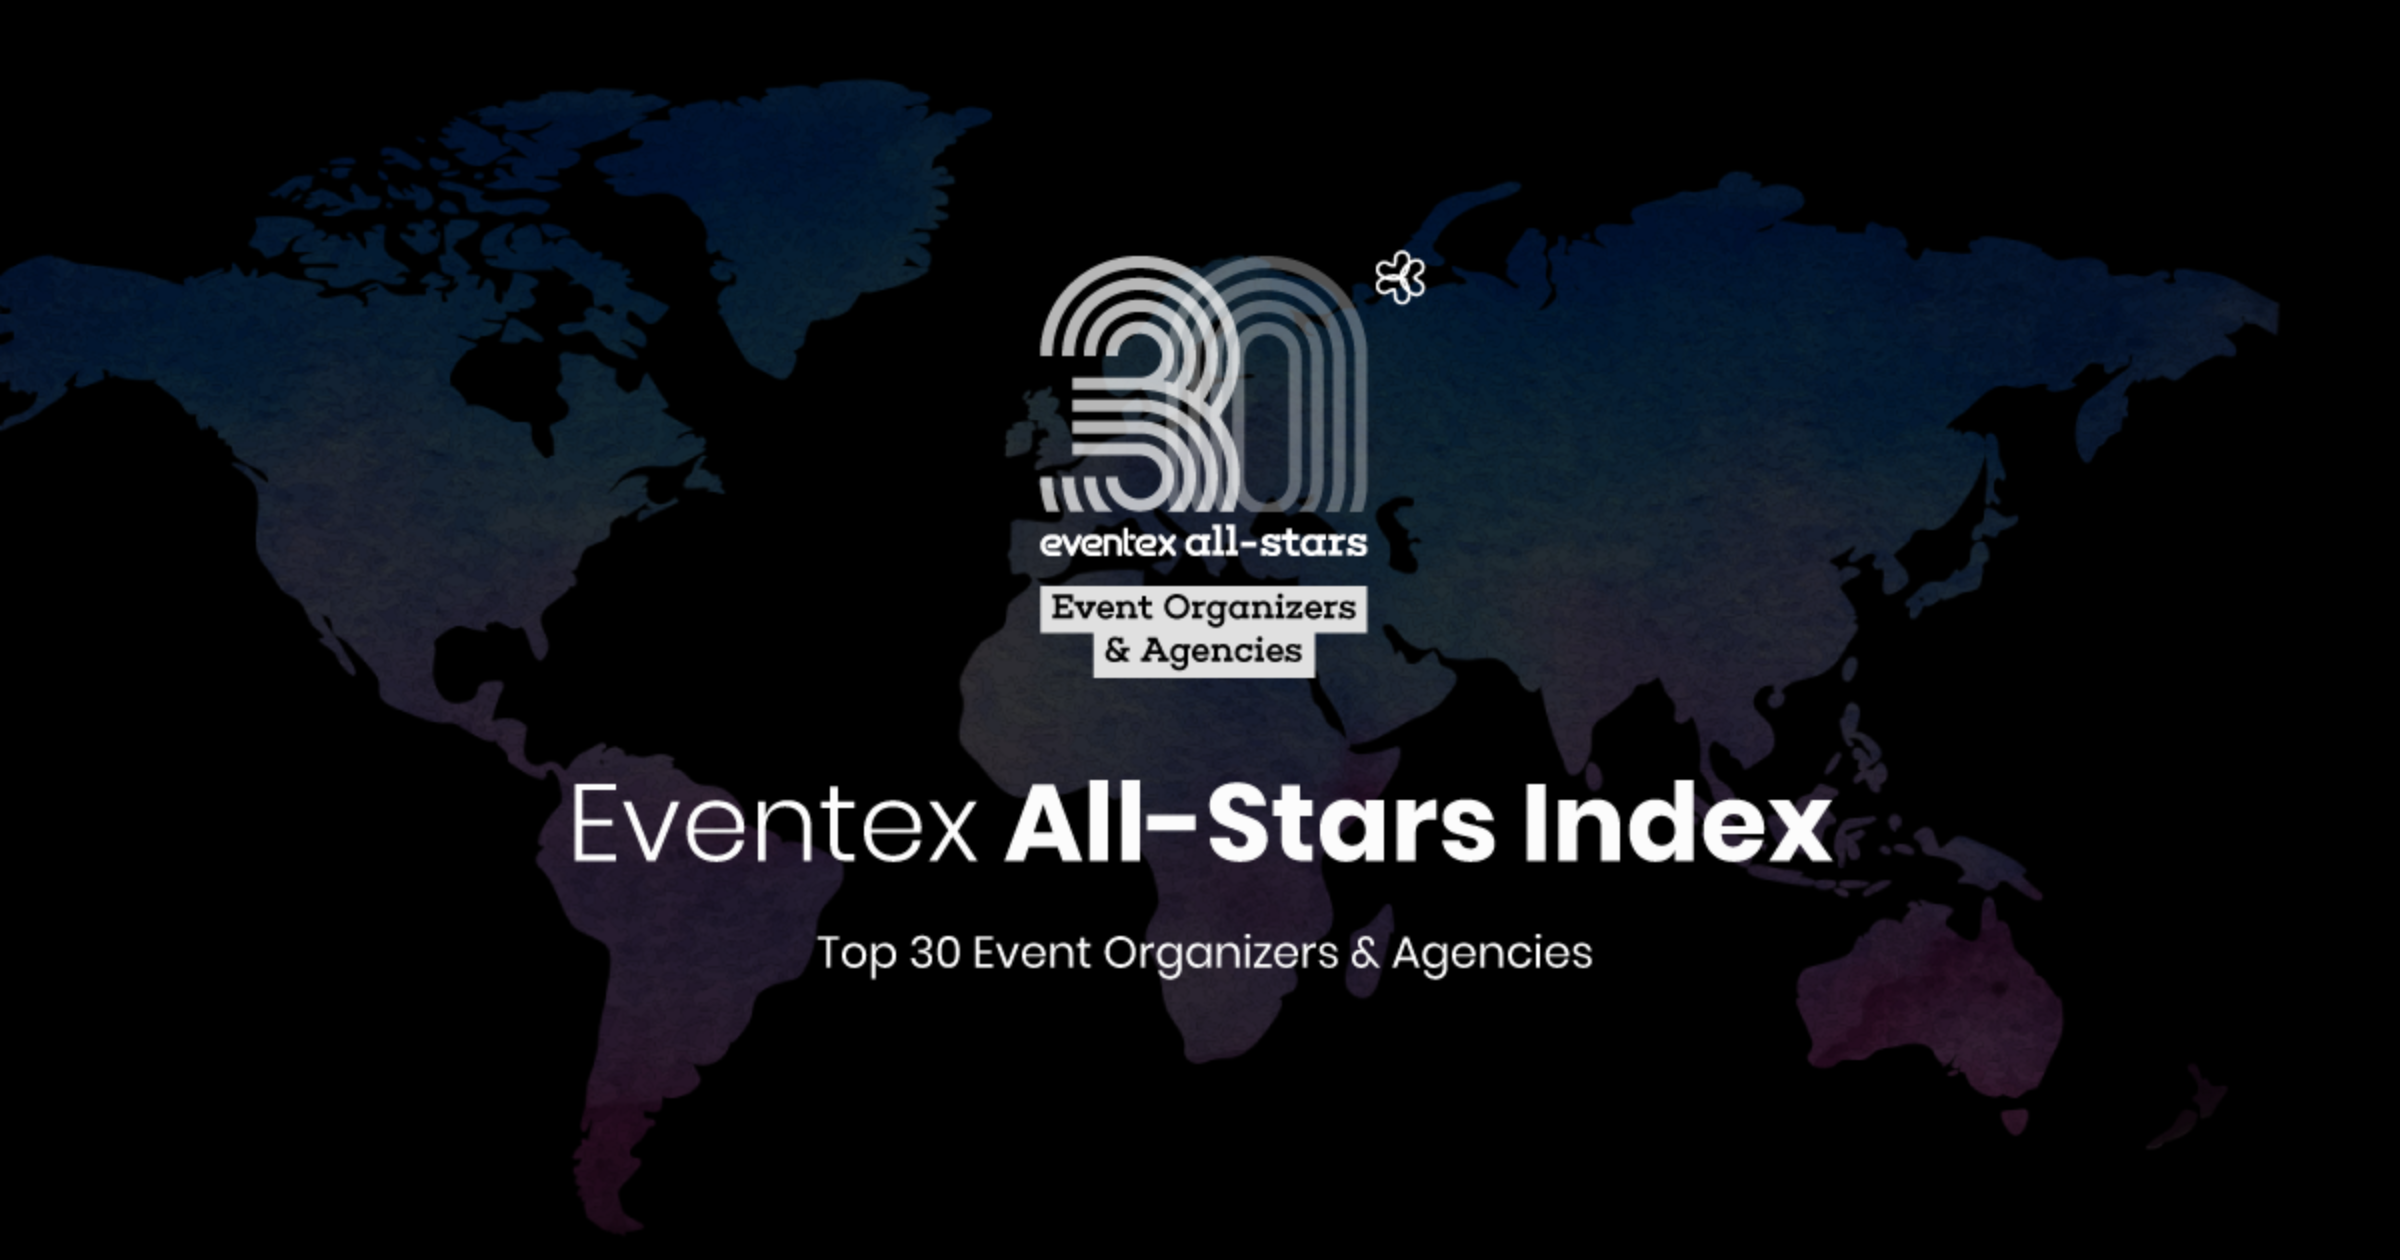 All Stars Index 2019 Facebook